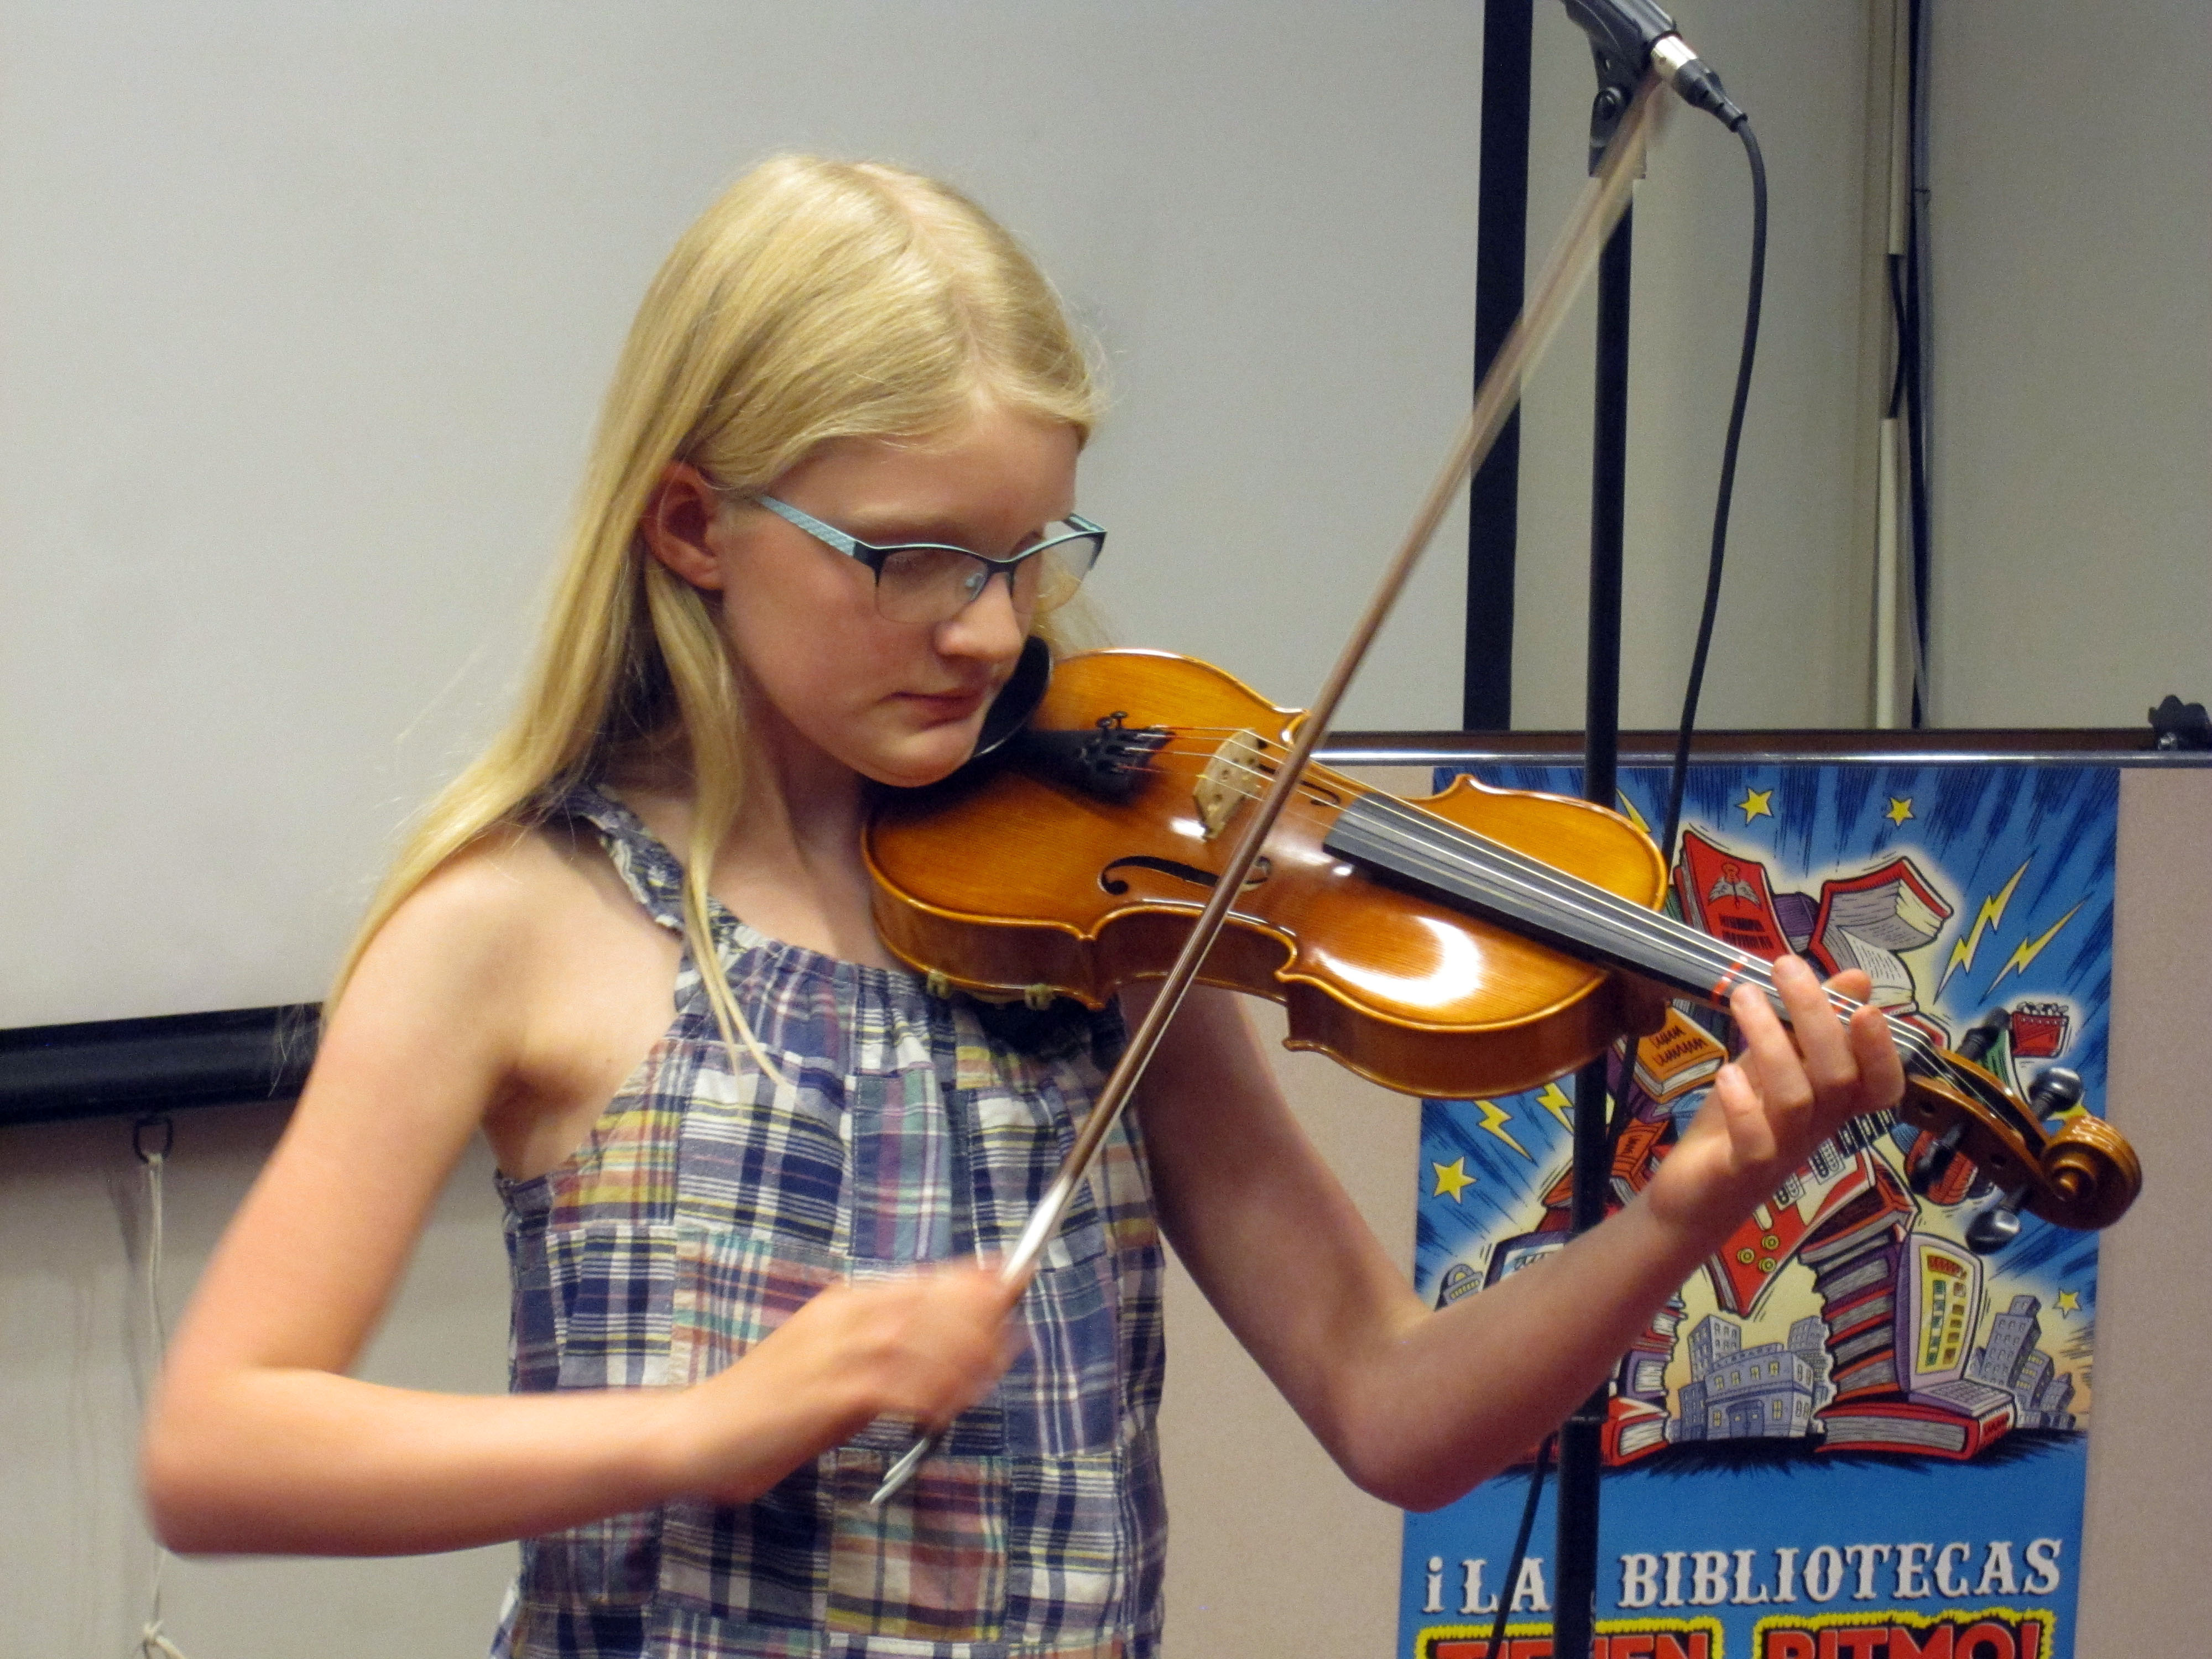 A youth patron plays her violin for the crowd.